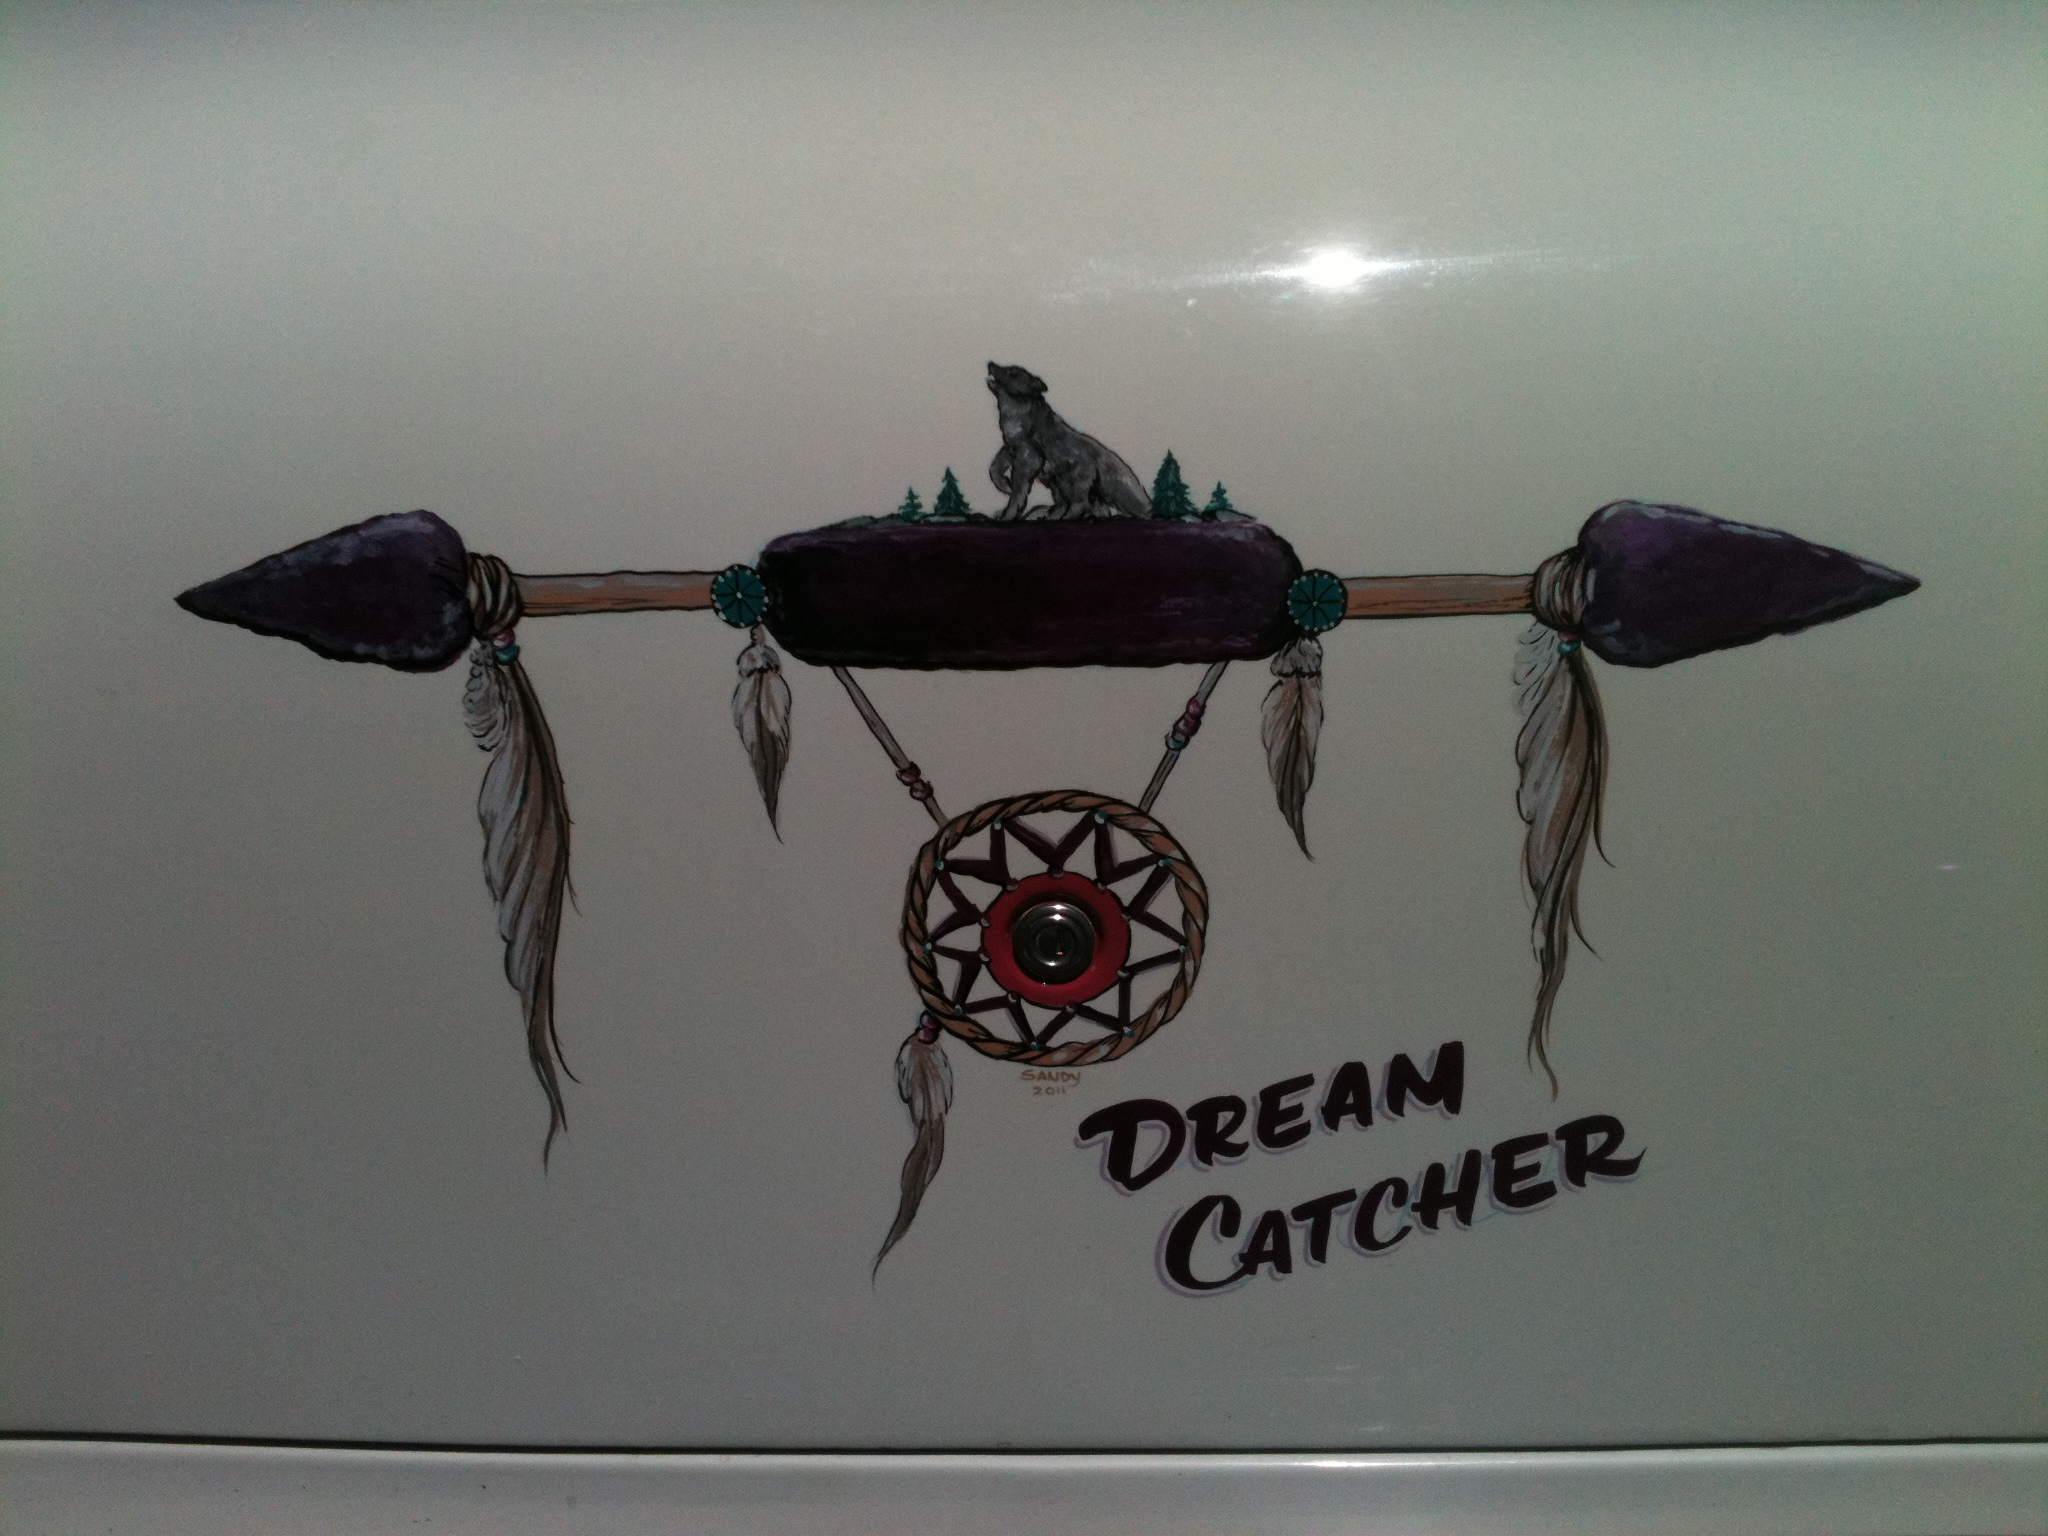 Handpainted on truck of car